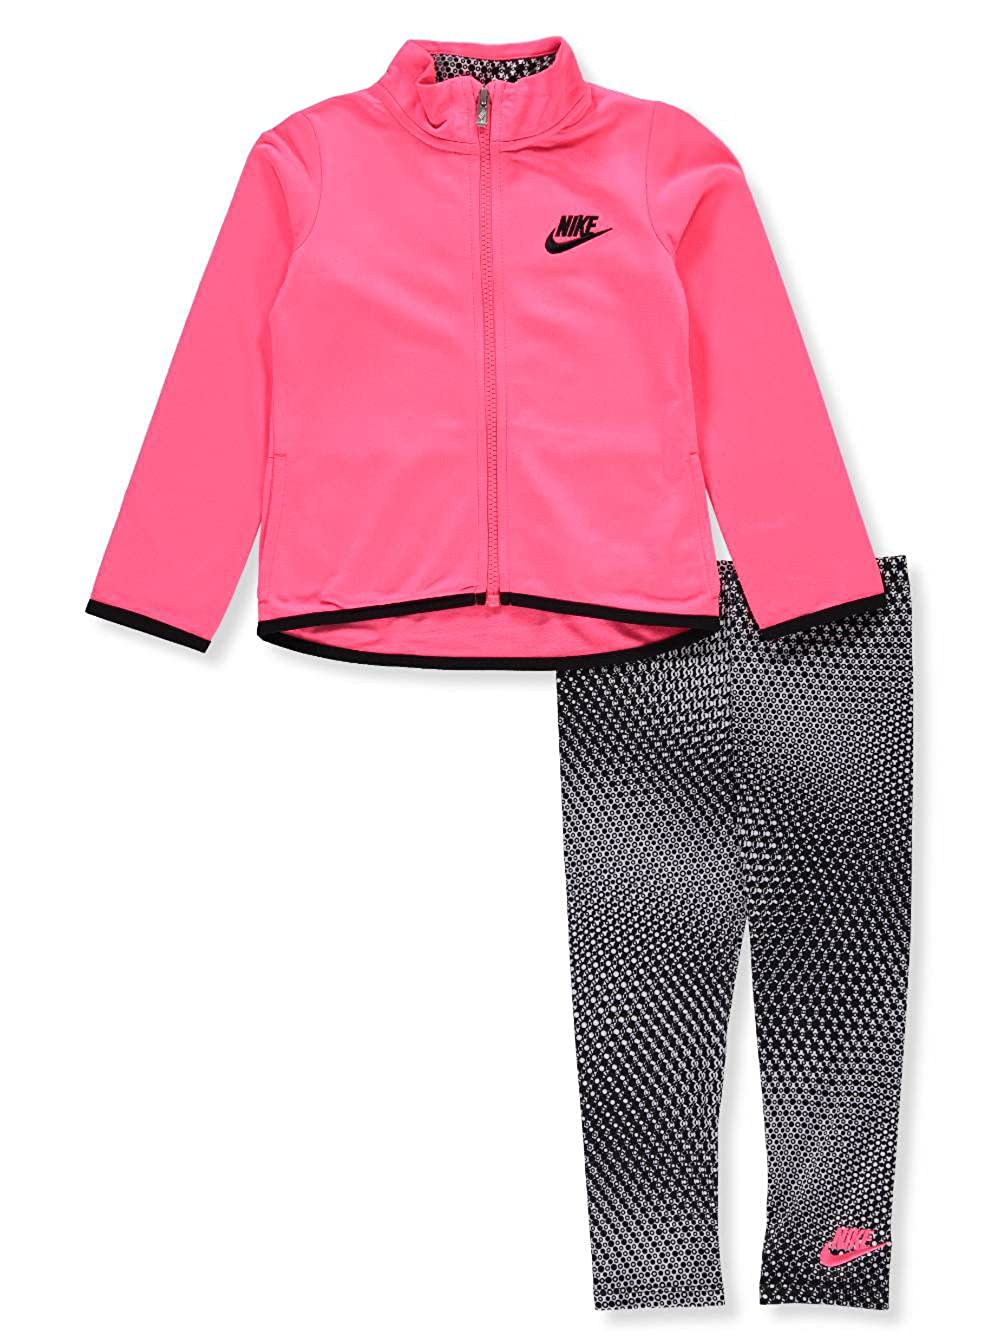 Amazon.com NIKE Girls\u0027 2,Piece Leggings Set Outfit Clothing